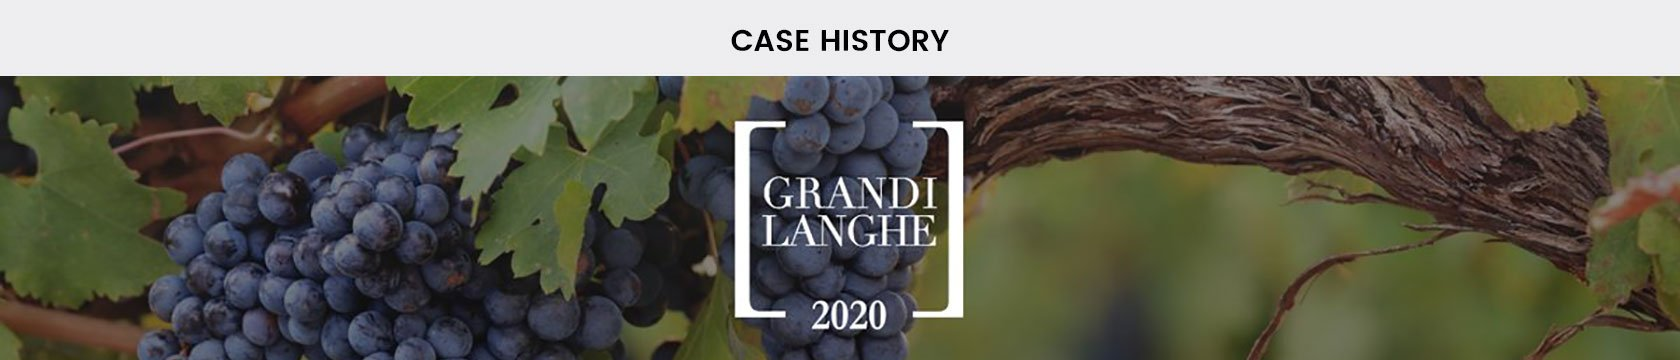 Clappit-Expo-Exhibitor-Case-History-Grandi-Langhe-Top-01